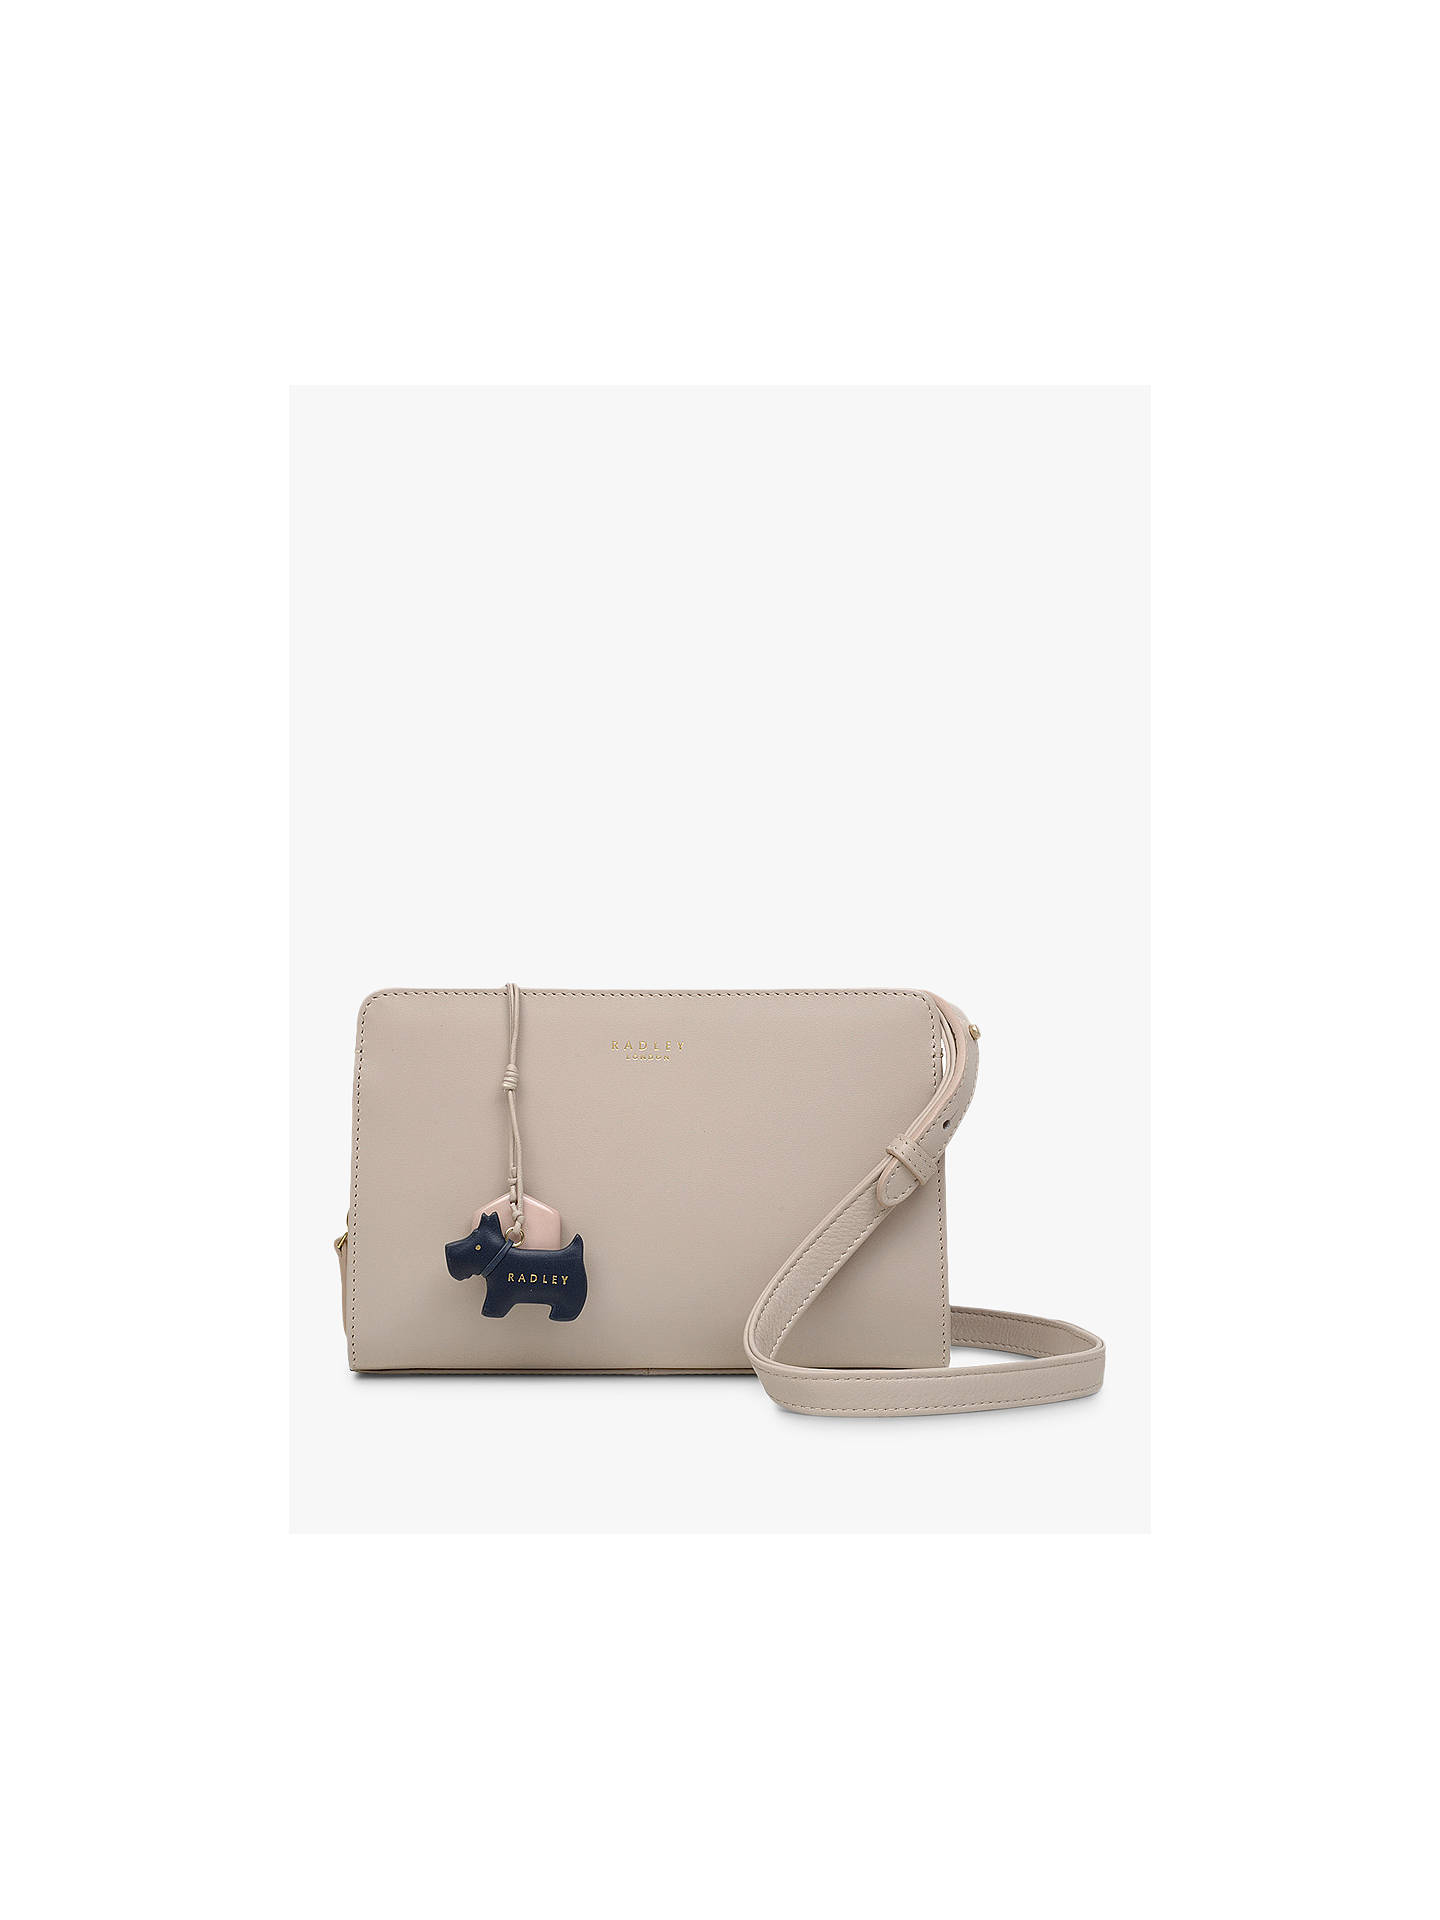 4bfd5f516 Buy Radley Liverpool Street Leather Medium Cross Body Bag, Dove Grey Online  at johnlewis.